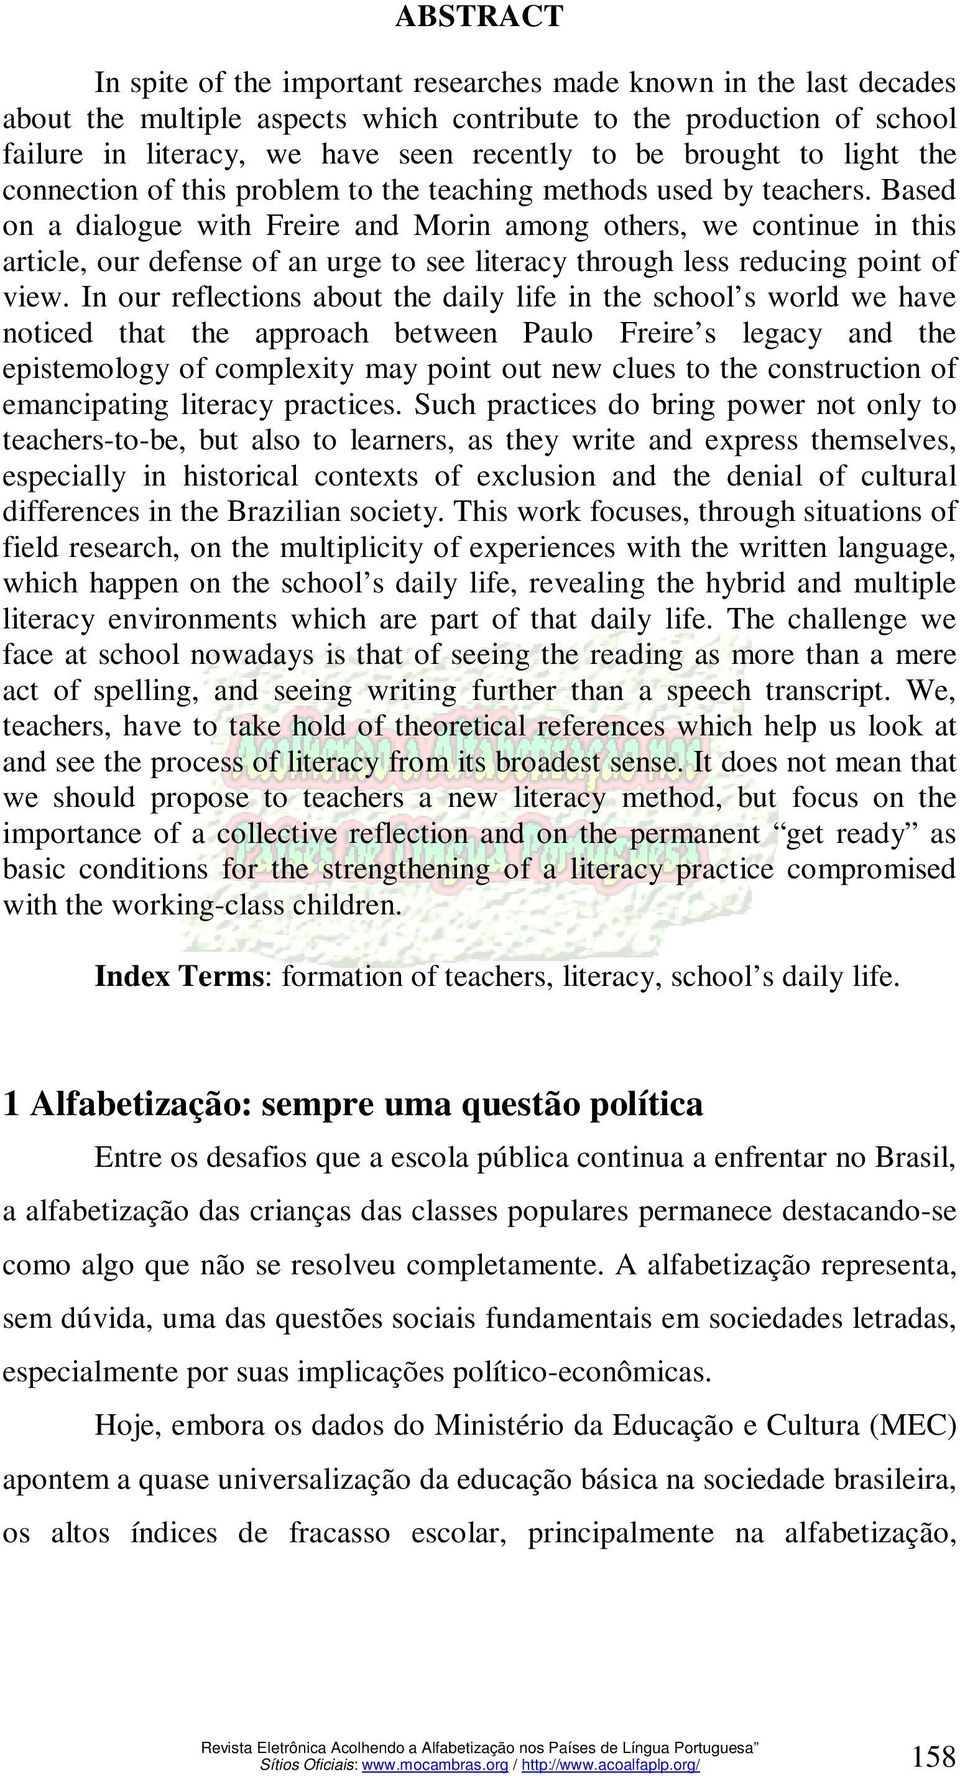 Based on a dialogue with Freire and Morin among others, we continue in this article, our defense of an urge to see literacy through less reducing point of view.